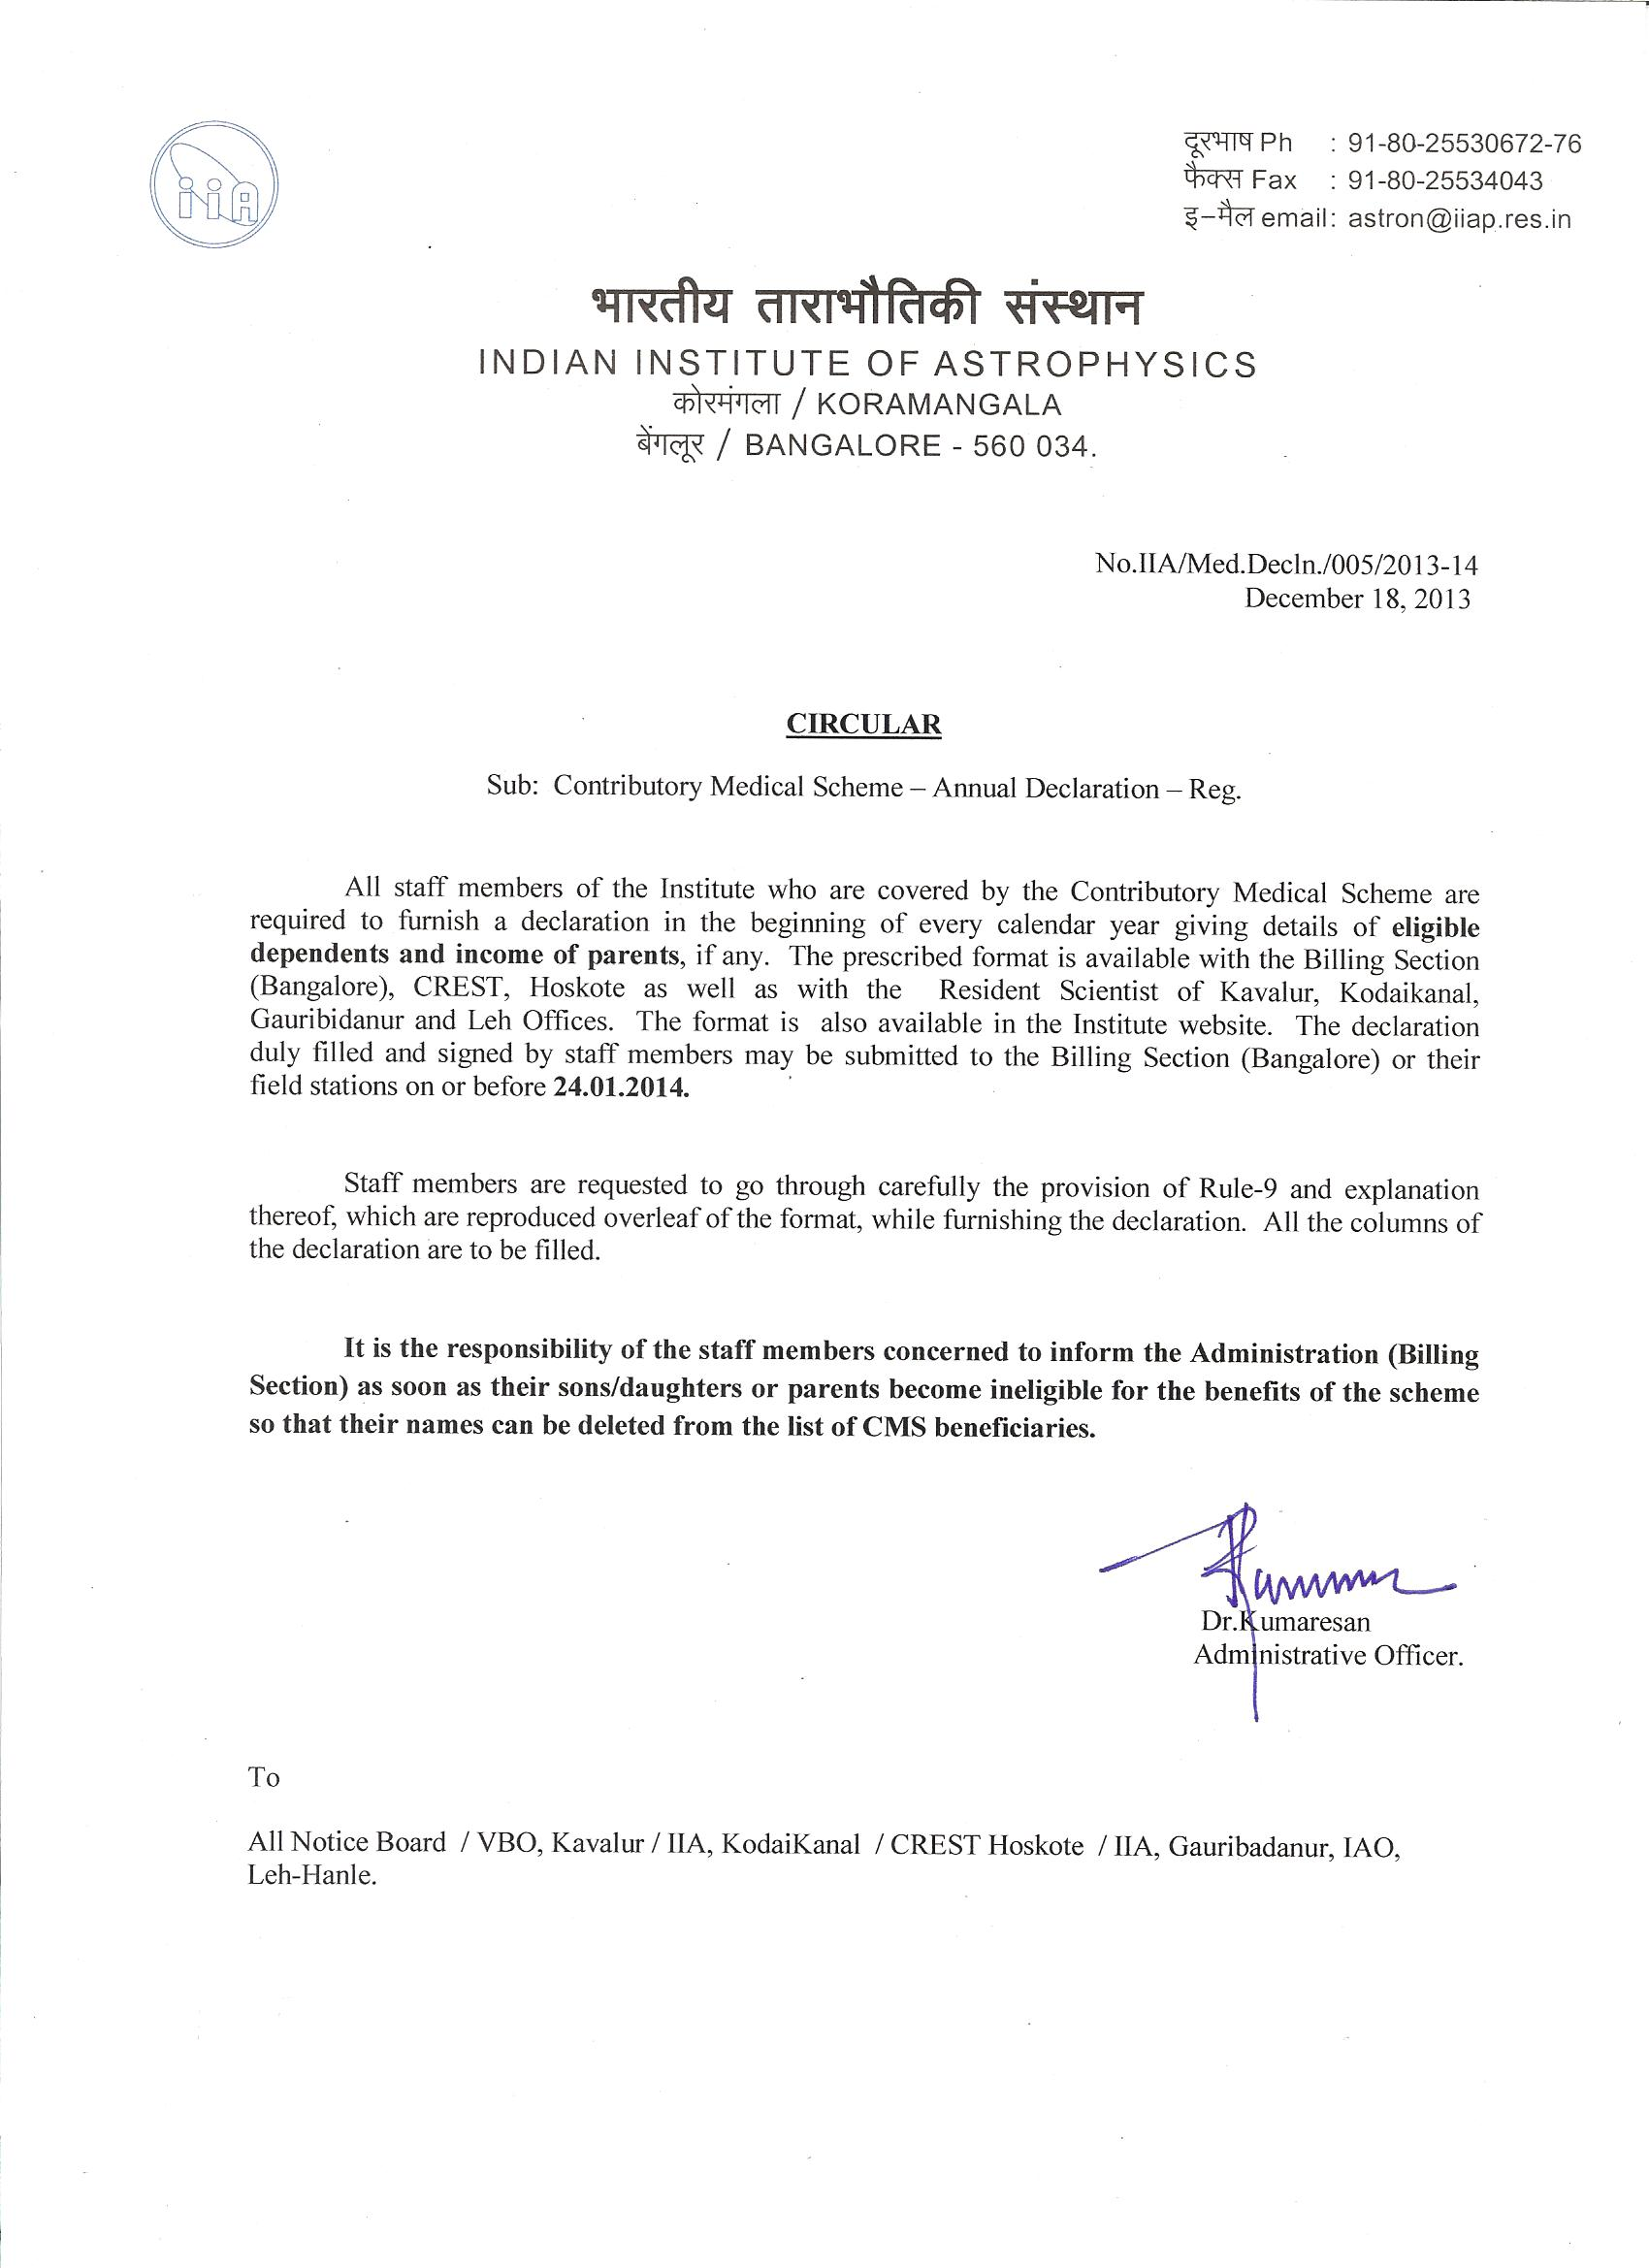 Intranet Notice Board | Indian Institute of Astrophysics